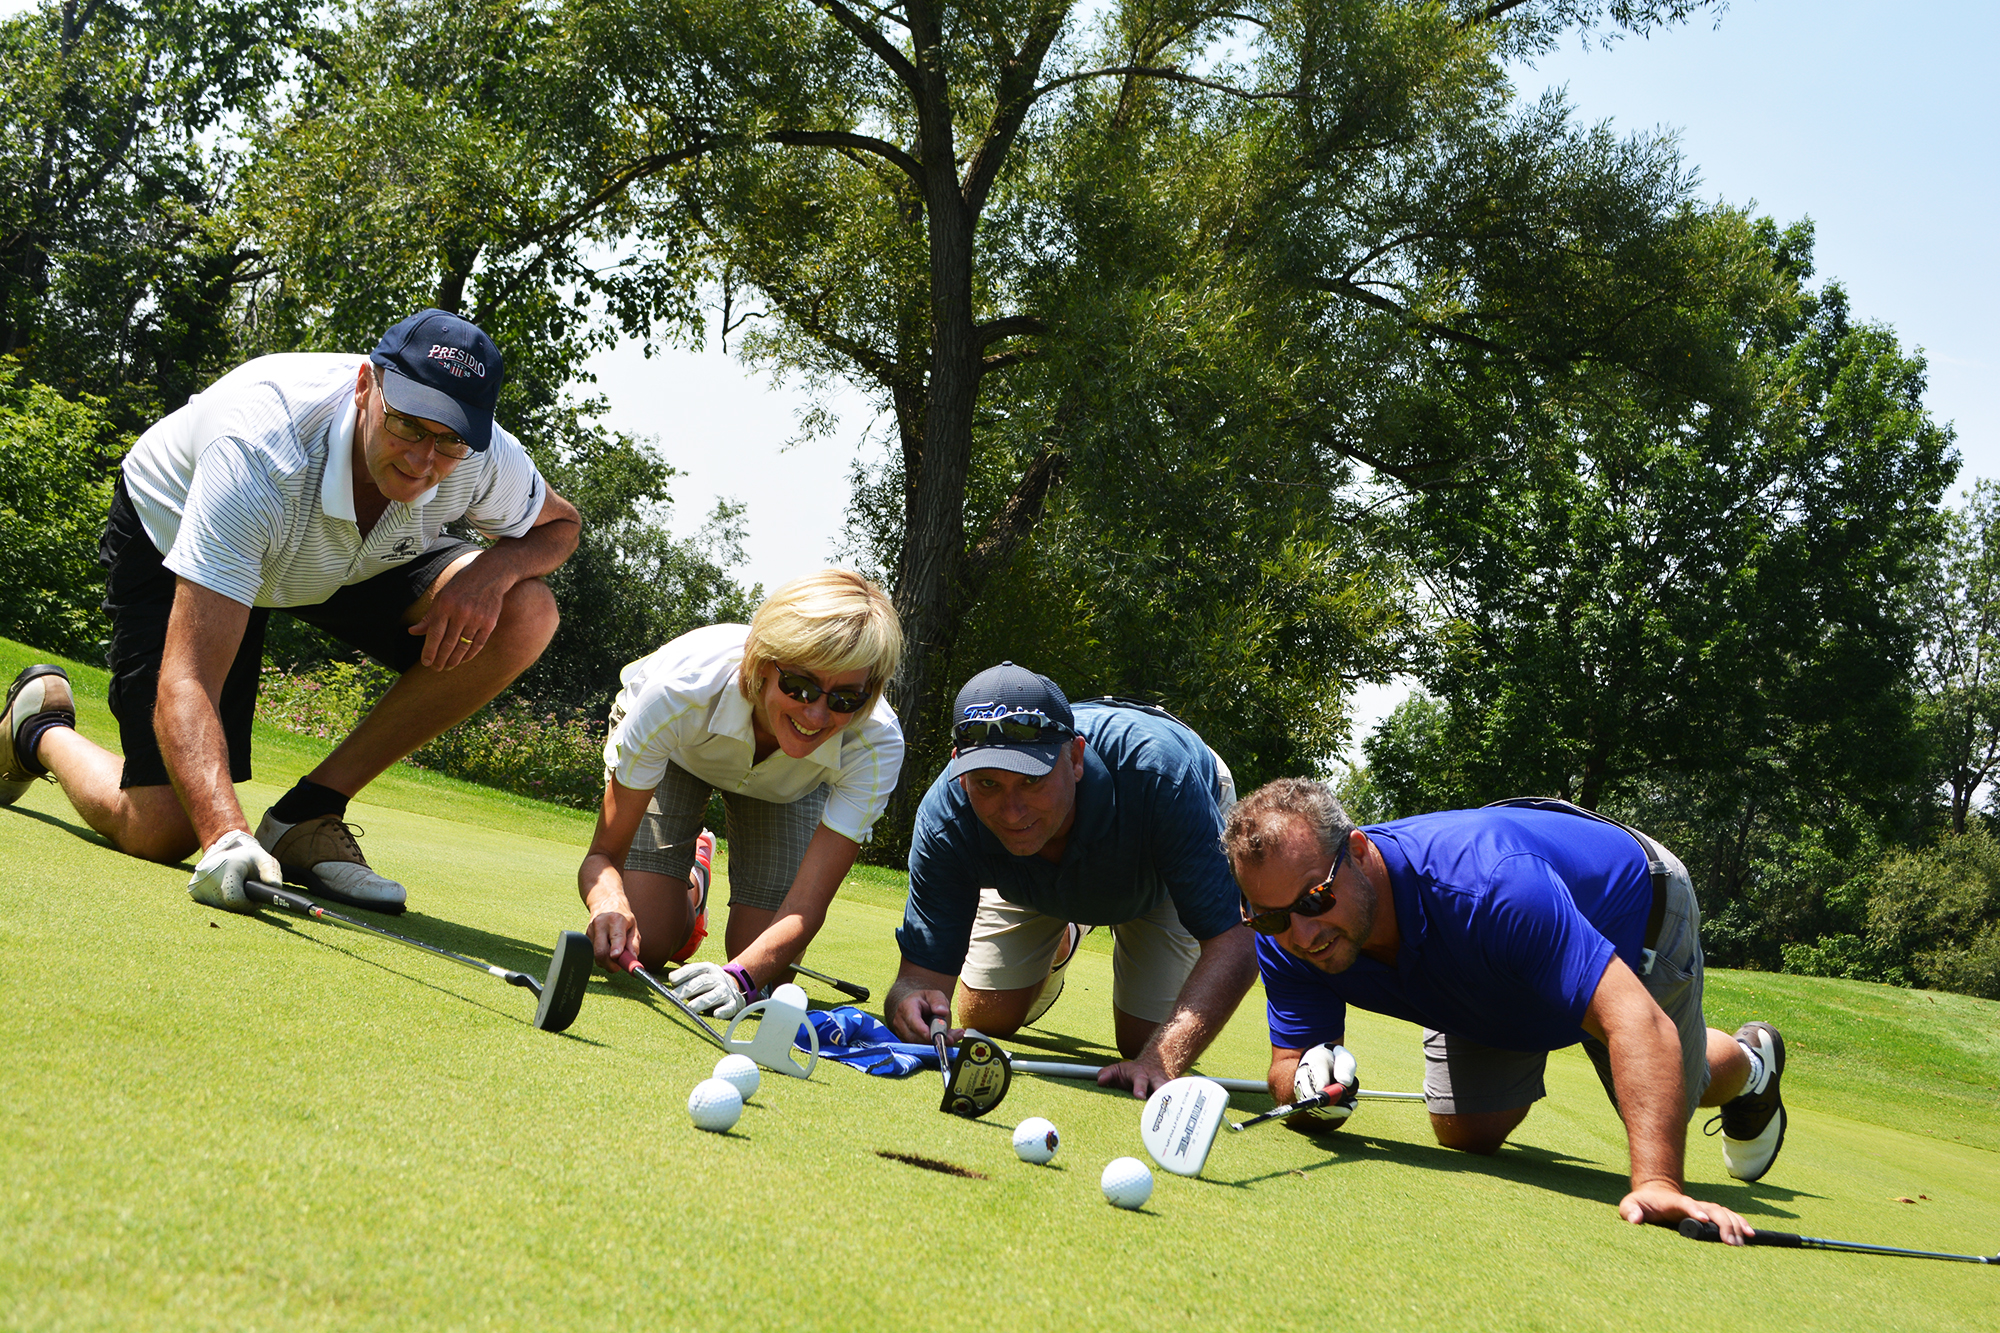 The 'best yet' for Skal Toronto annual golf event